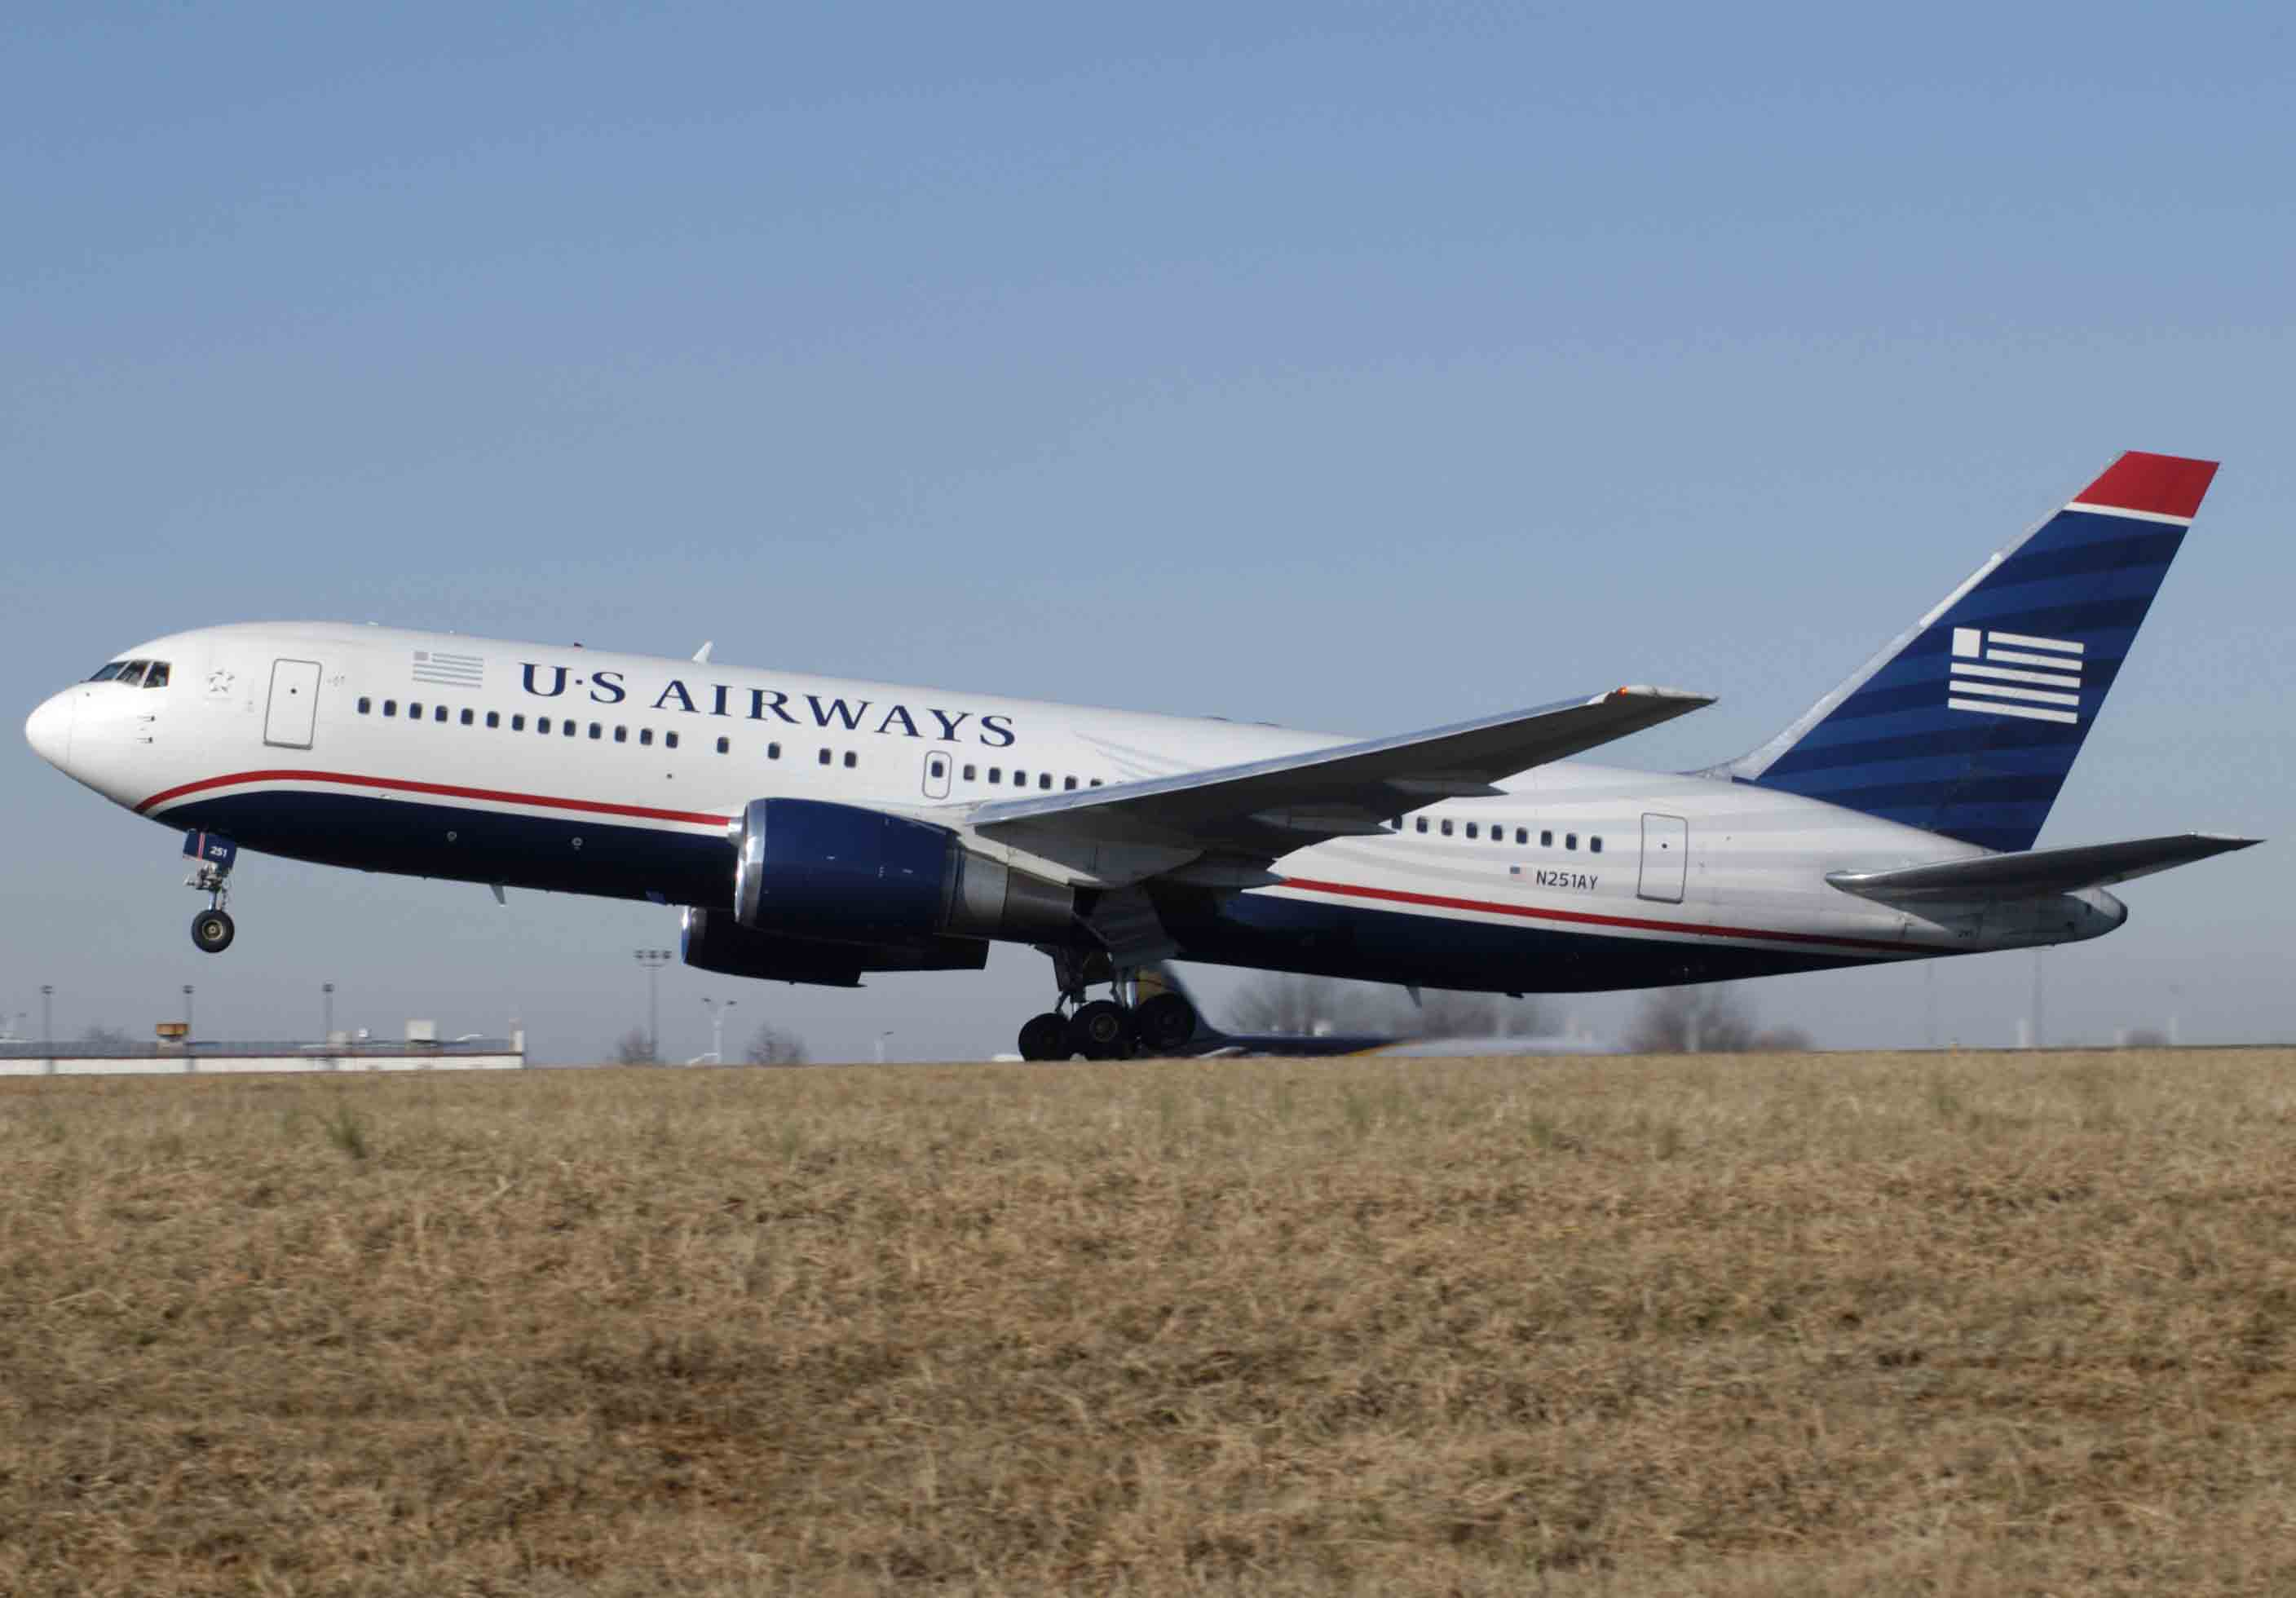 Please click on photo for full view, information and other US Airways photos.